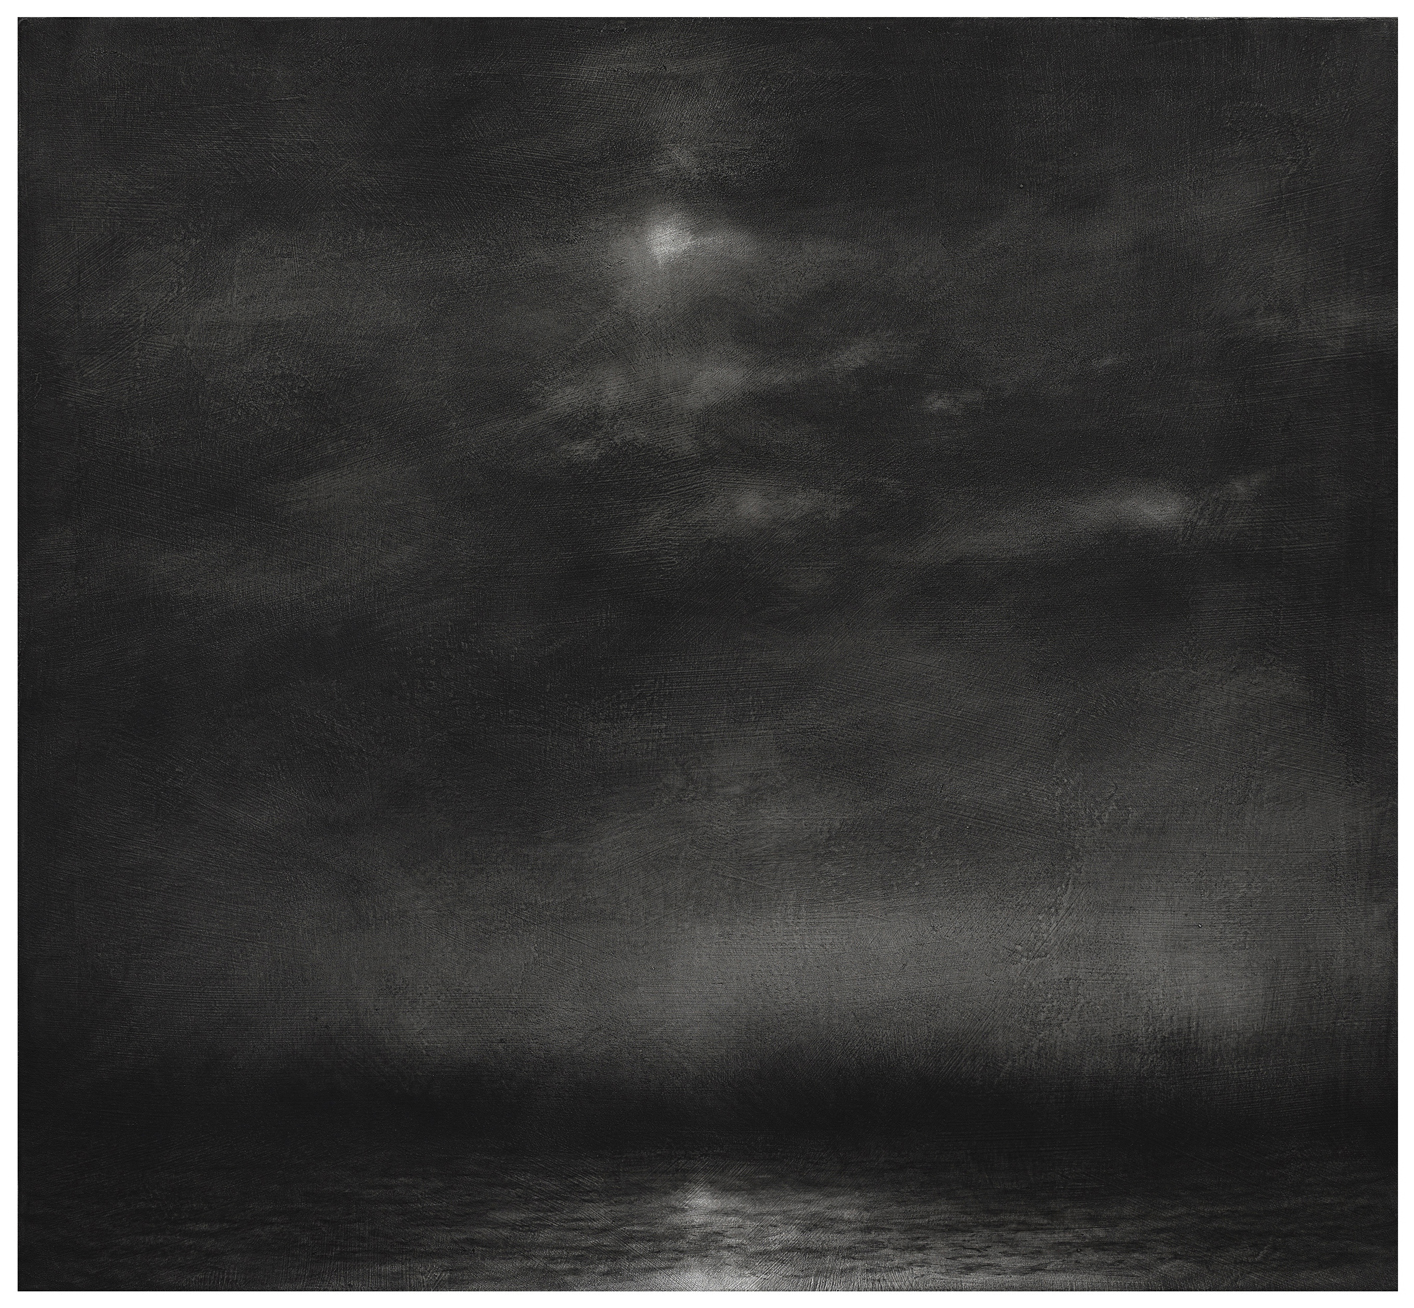 2013, charcoal on canvas, 85x95 cm.